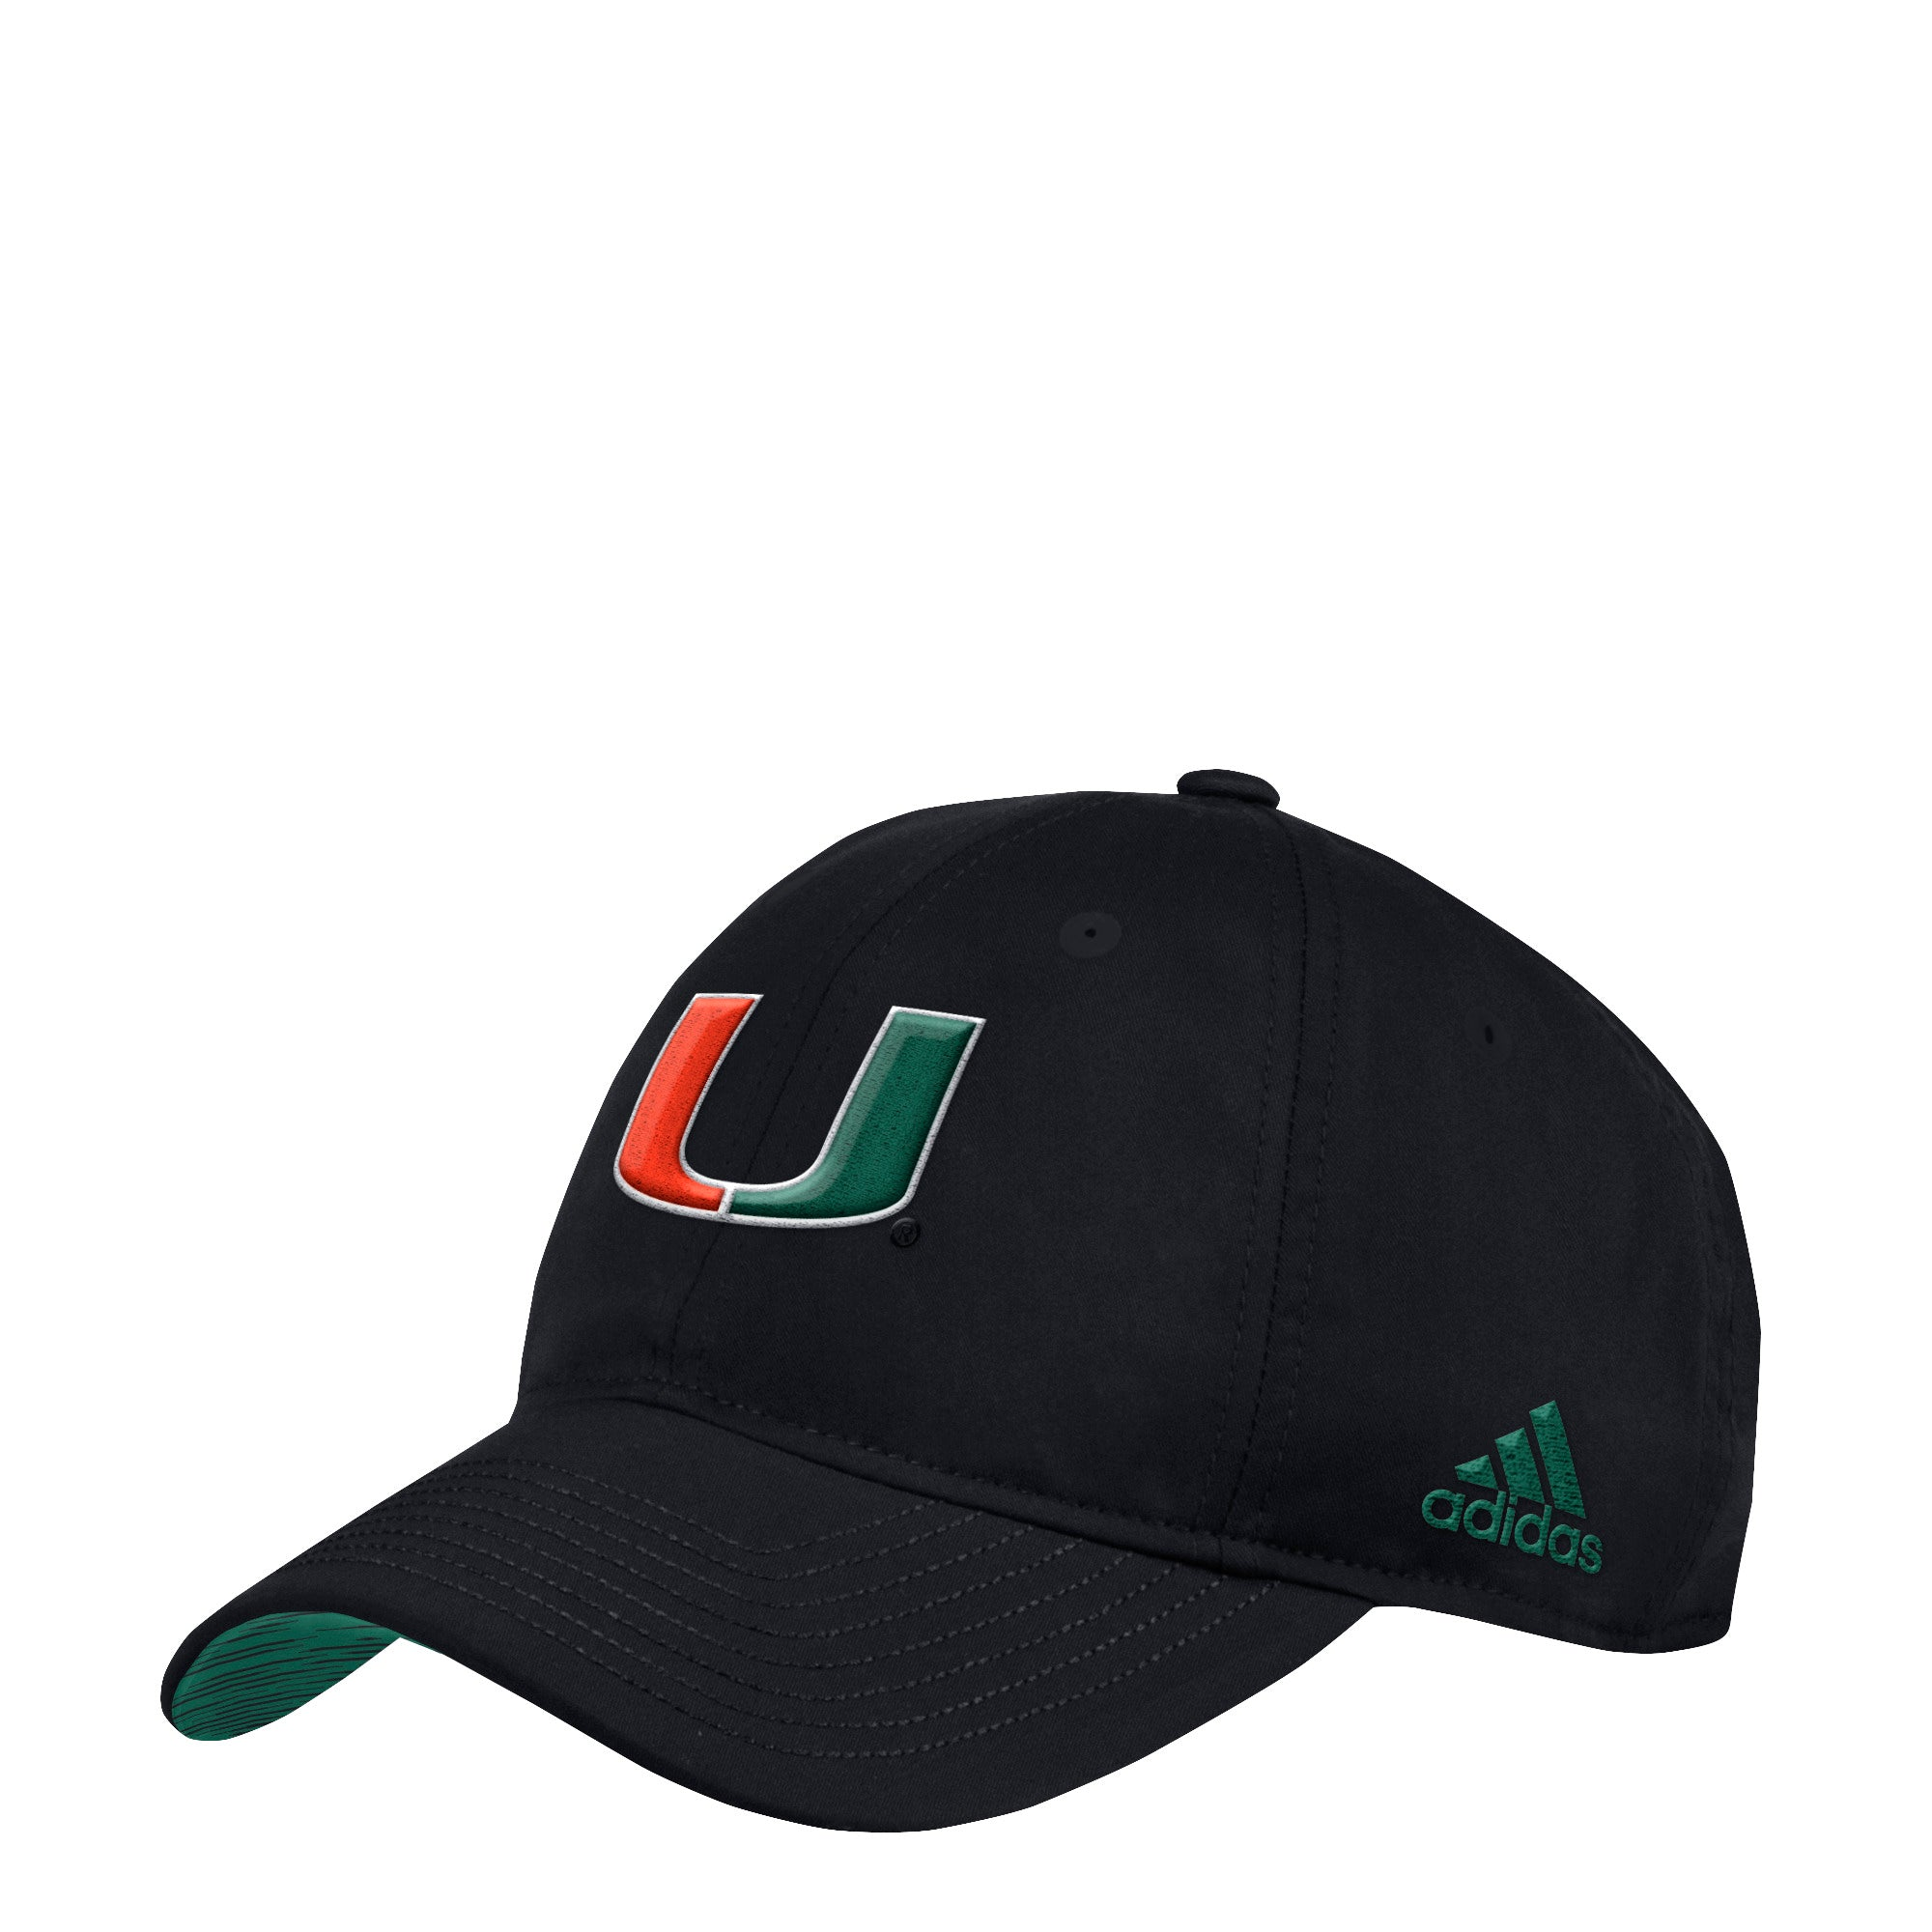 sale retailer 32aae 6eb74 Miami Hurricanes adidas 2018 Coaches U Adjustable Slouch Hat - Black –  CanesWear at Miami FanWear